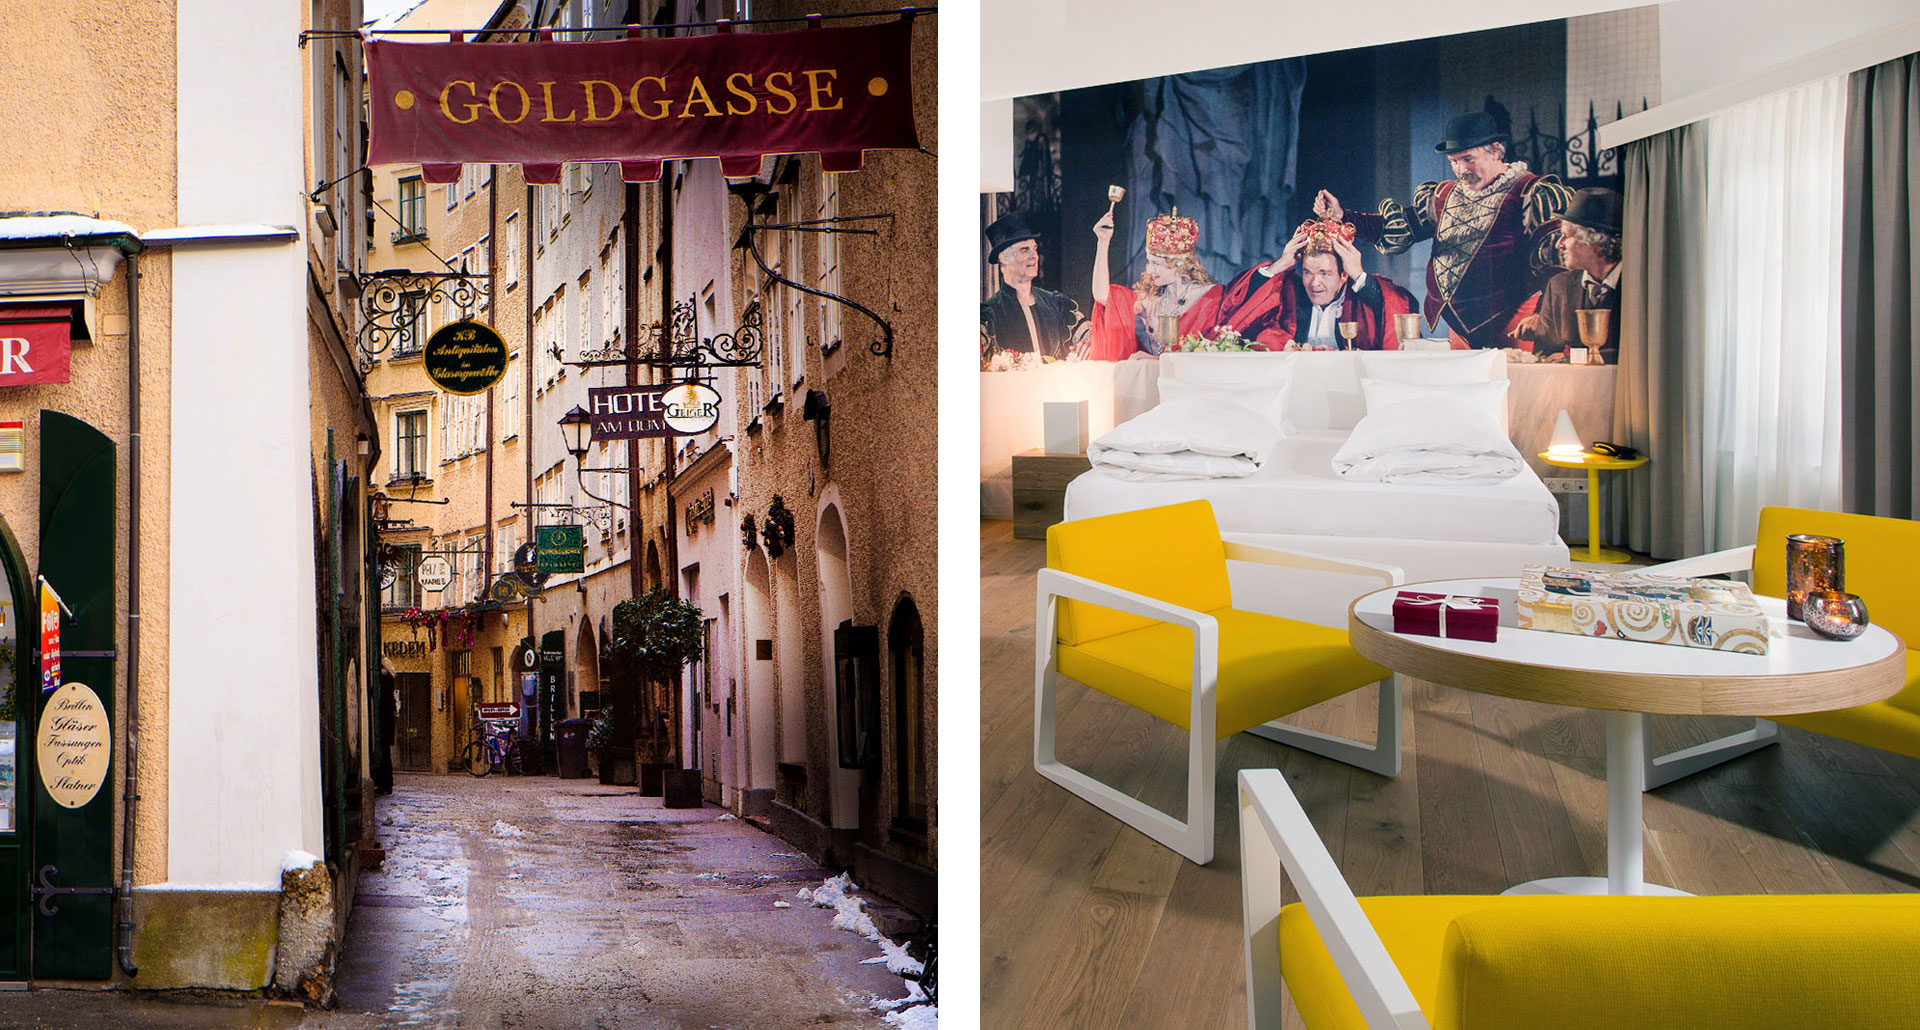 Small Luxury Hotel Goldgasse - boutique hotel in Salzburg